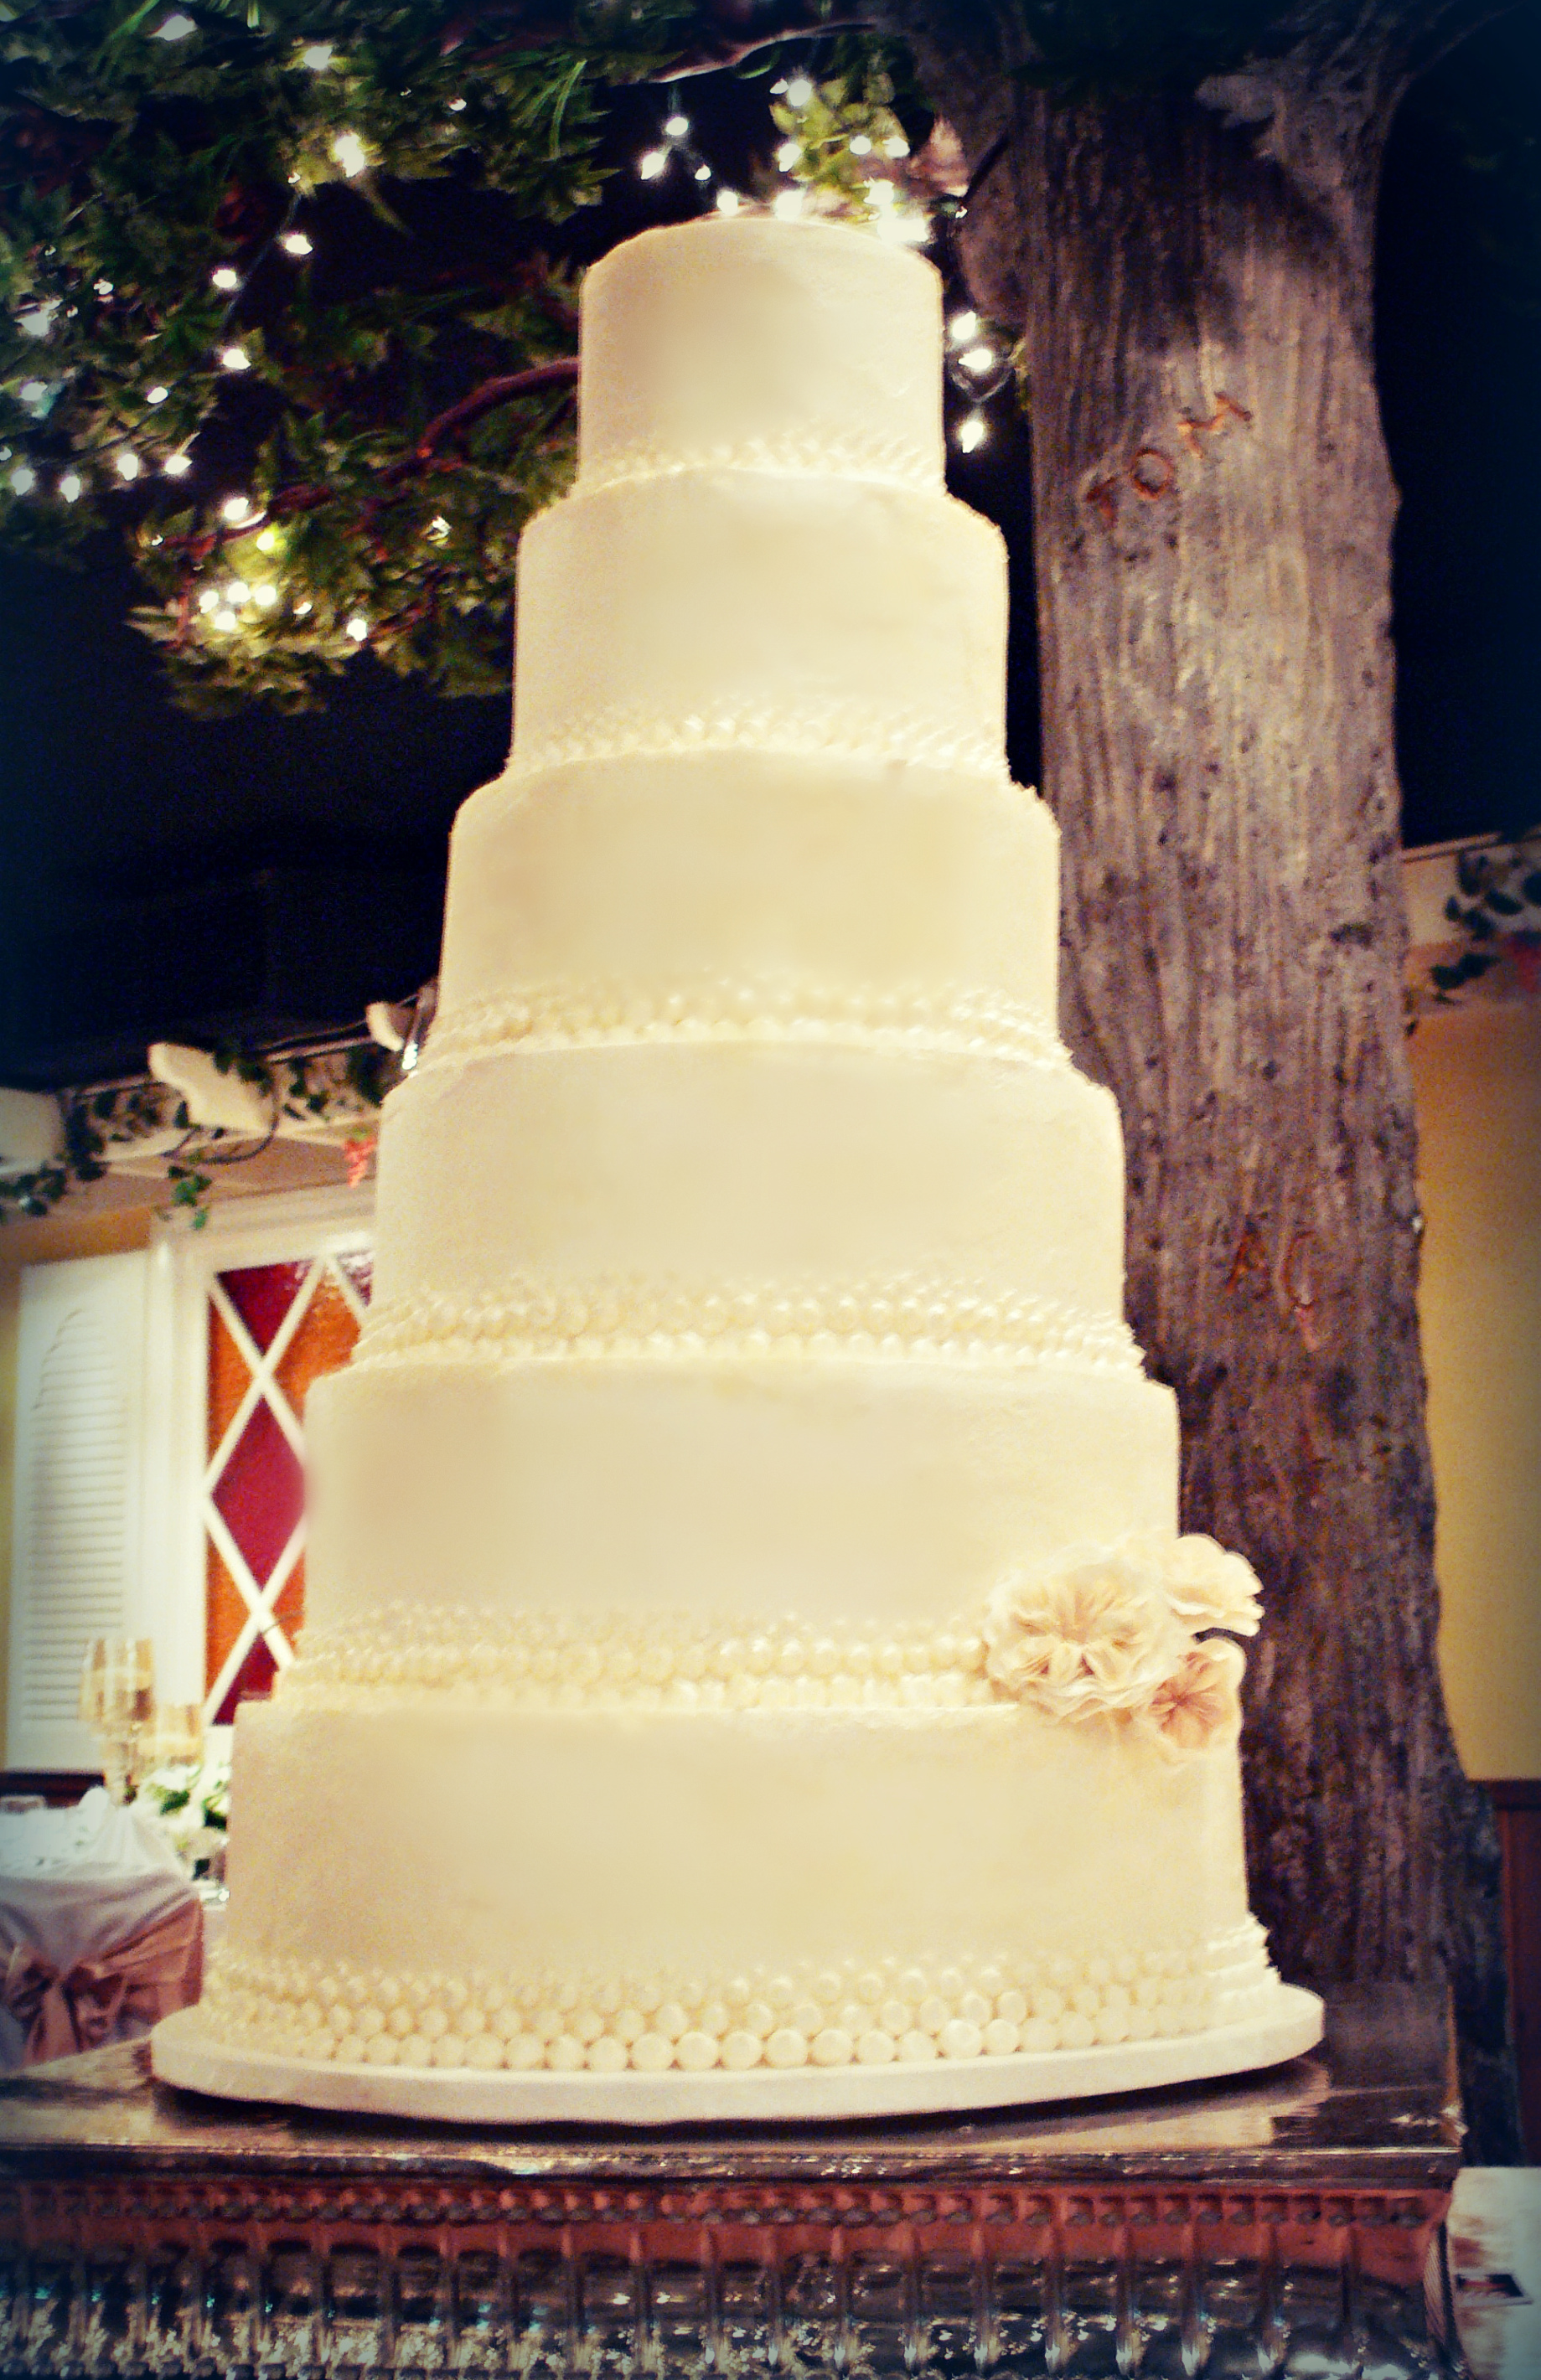 Ivory wedding cake at Sherwood Room edit.jpg